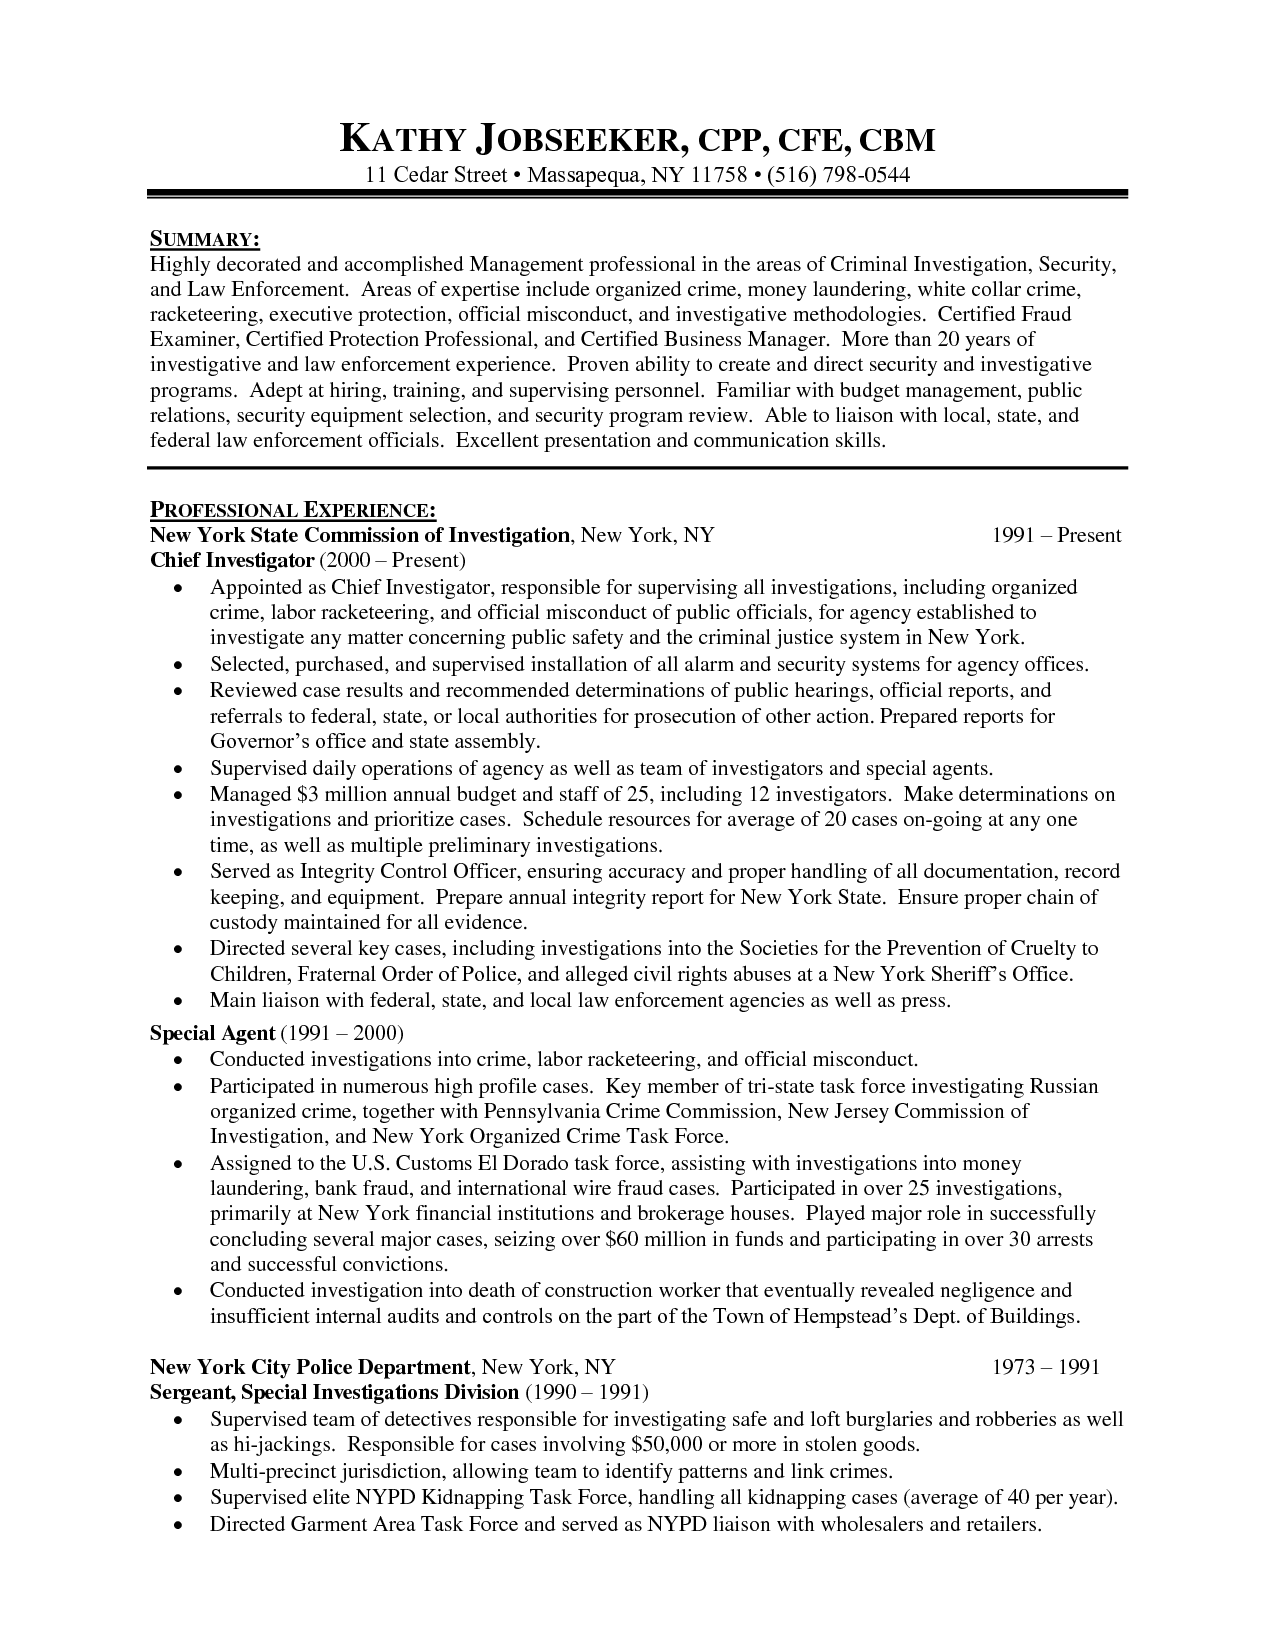 Police Officer Resume Sample Objective - http://www.resumecareer ...